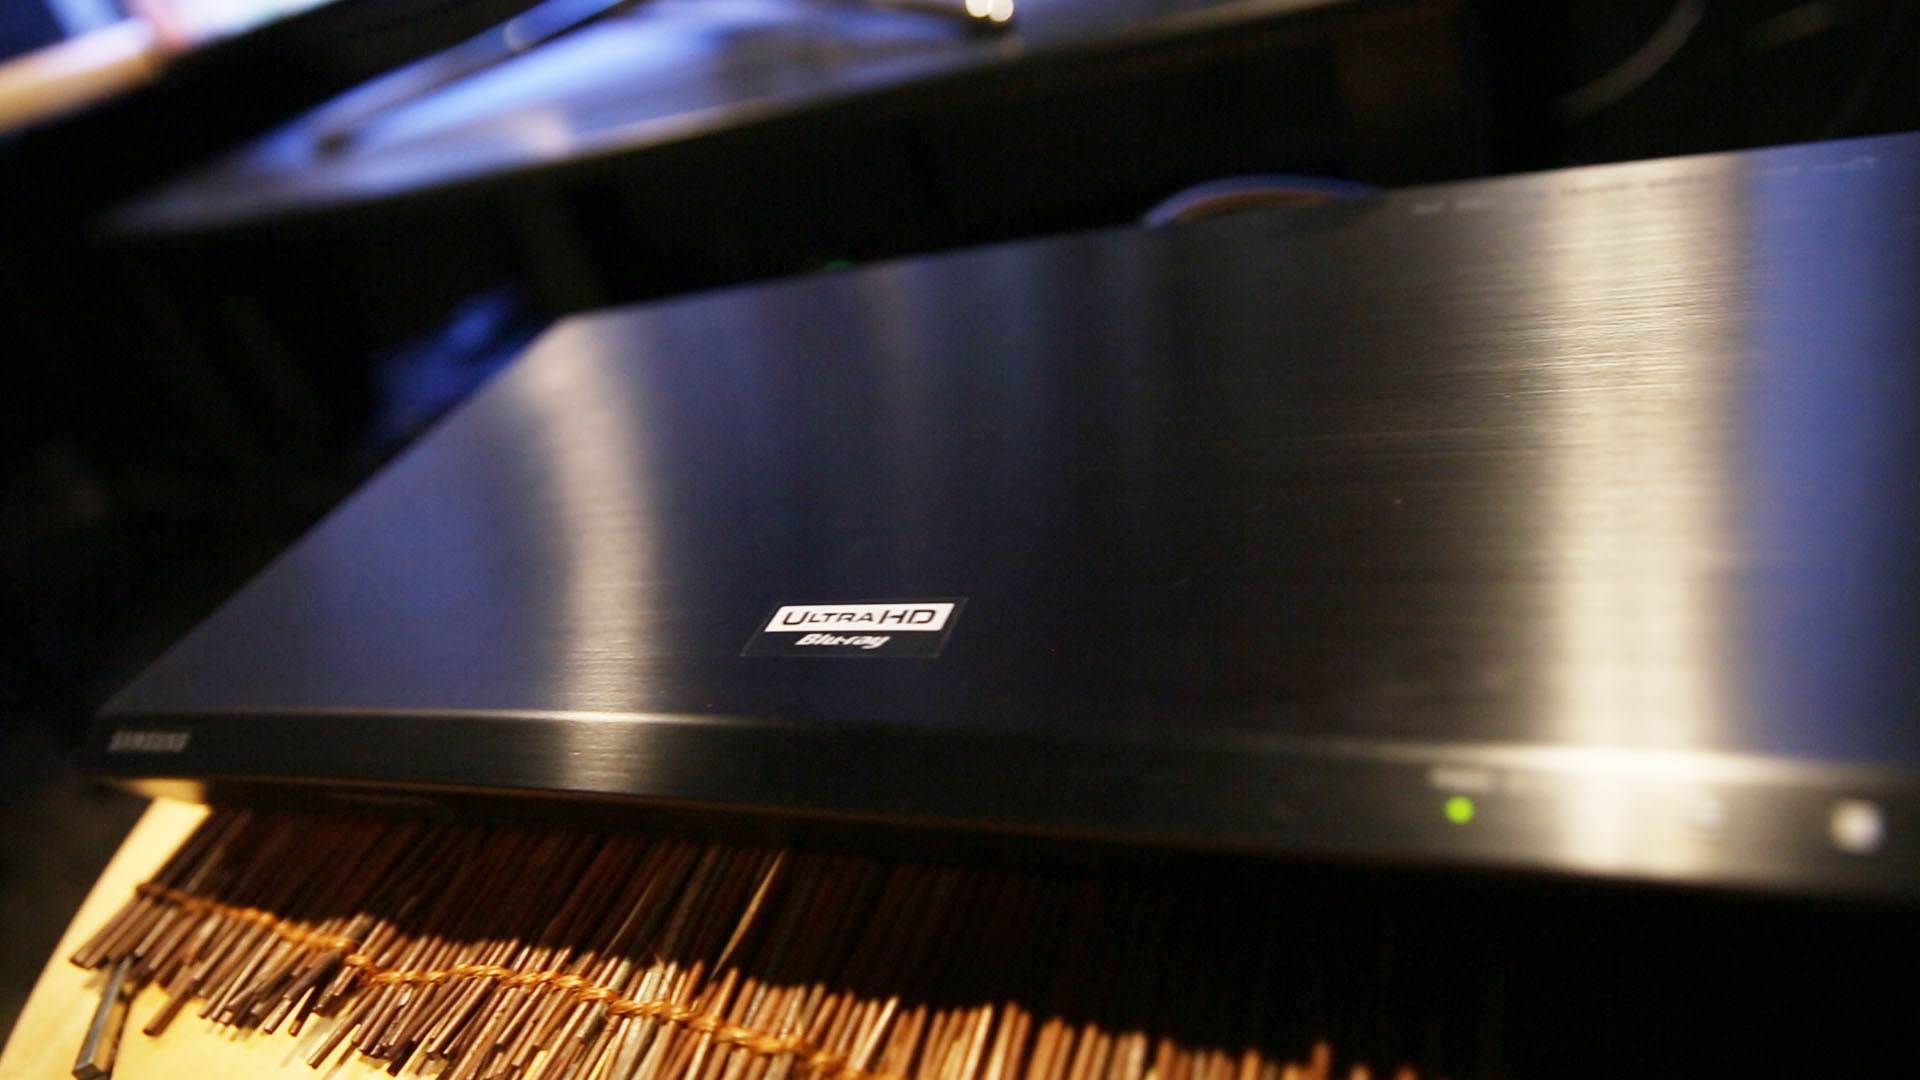 Video: Can Samsung's 4K Blu-ray player compete against streaming services?